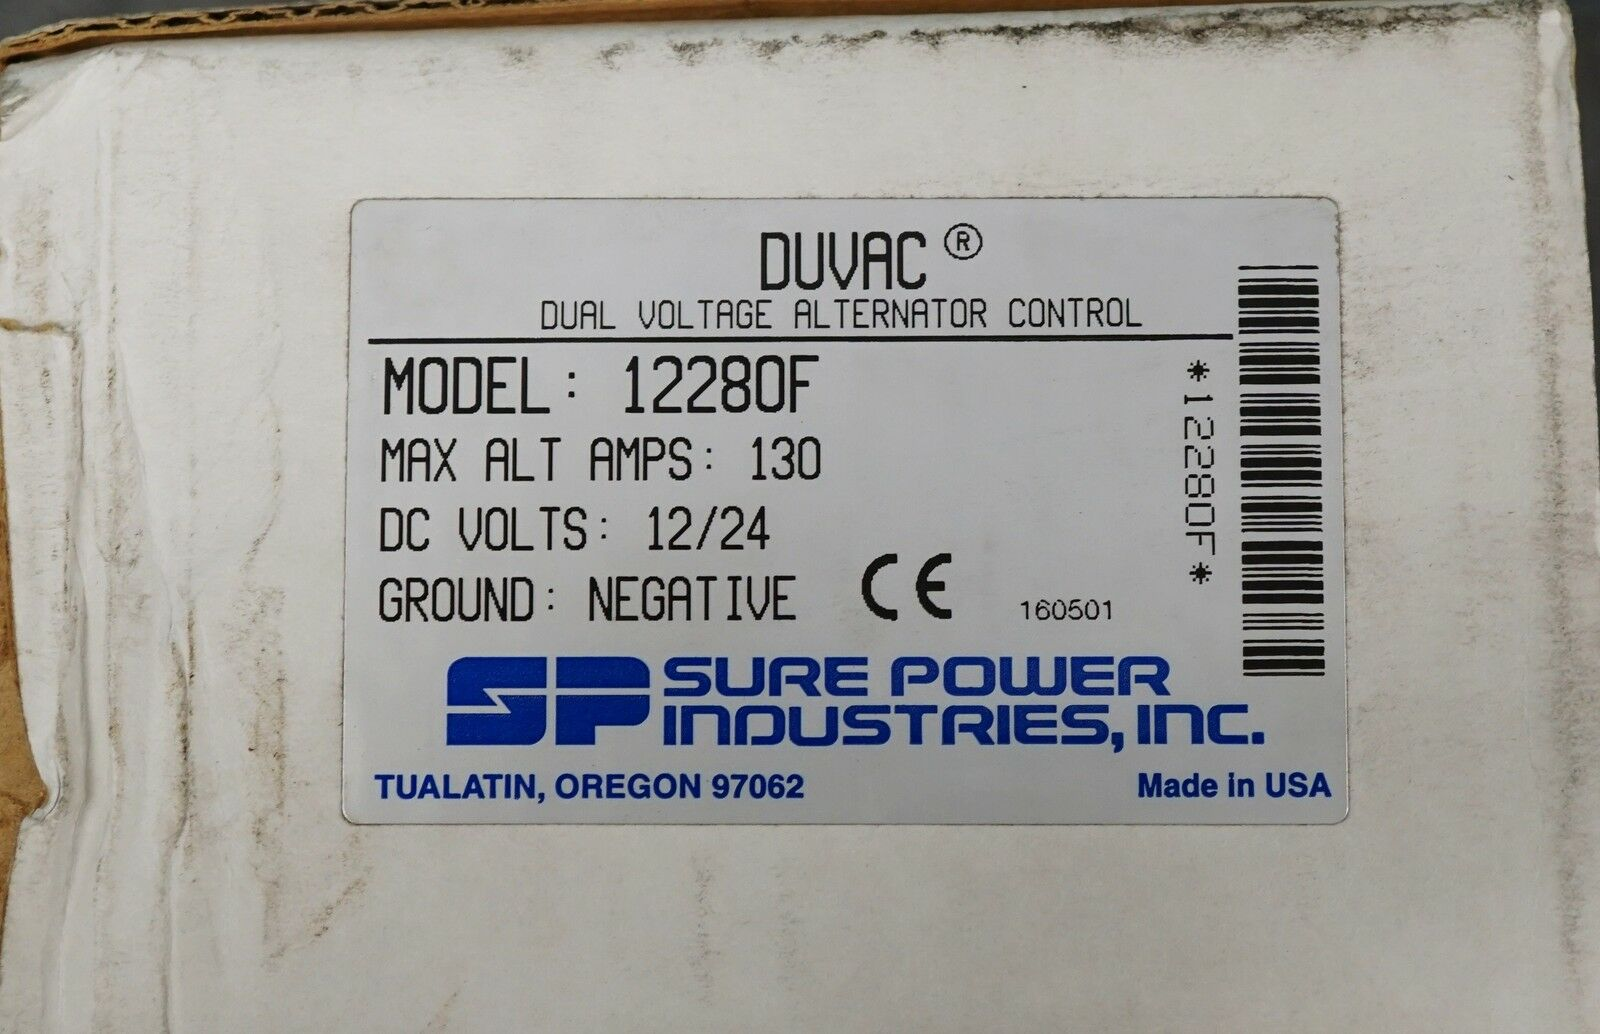 sure power 12280f duvac dual voltage alternator regulator control freightliner Chrysler Alternator Wiring